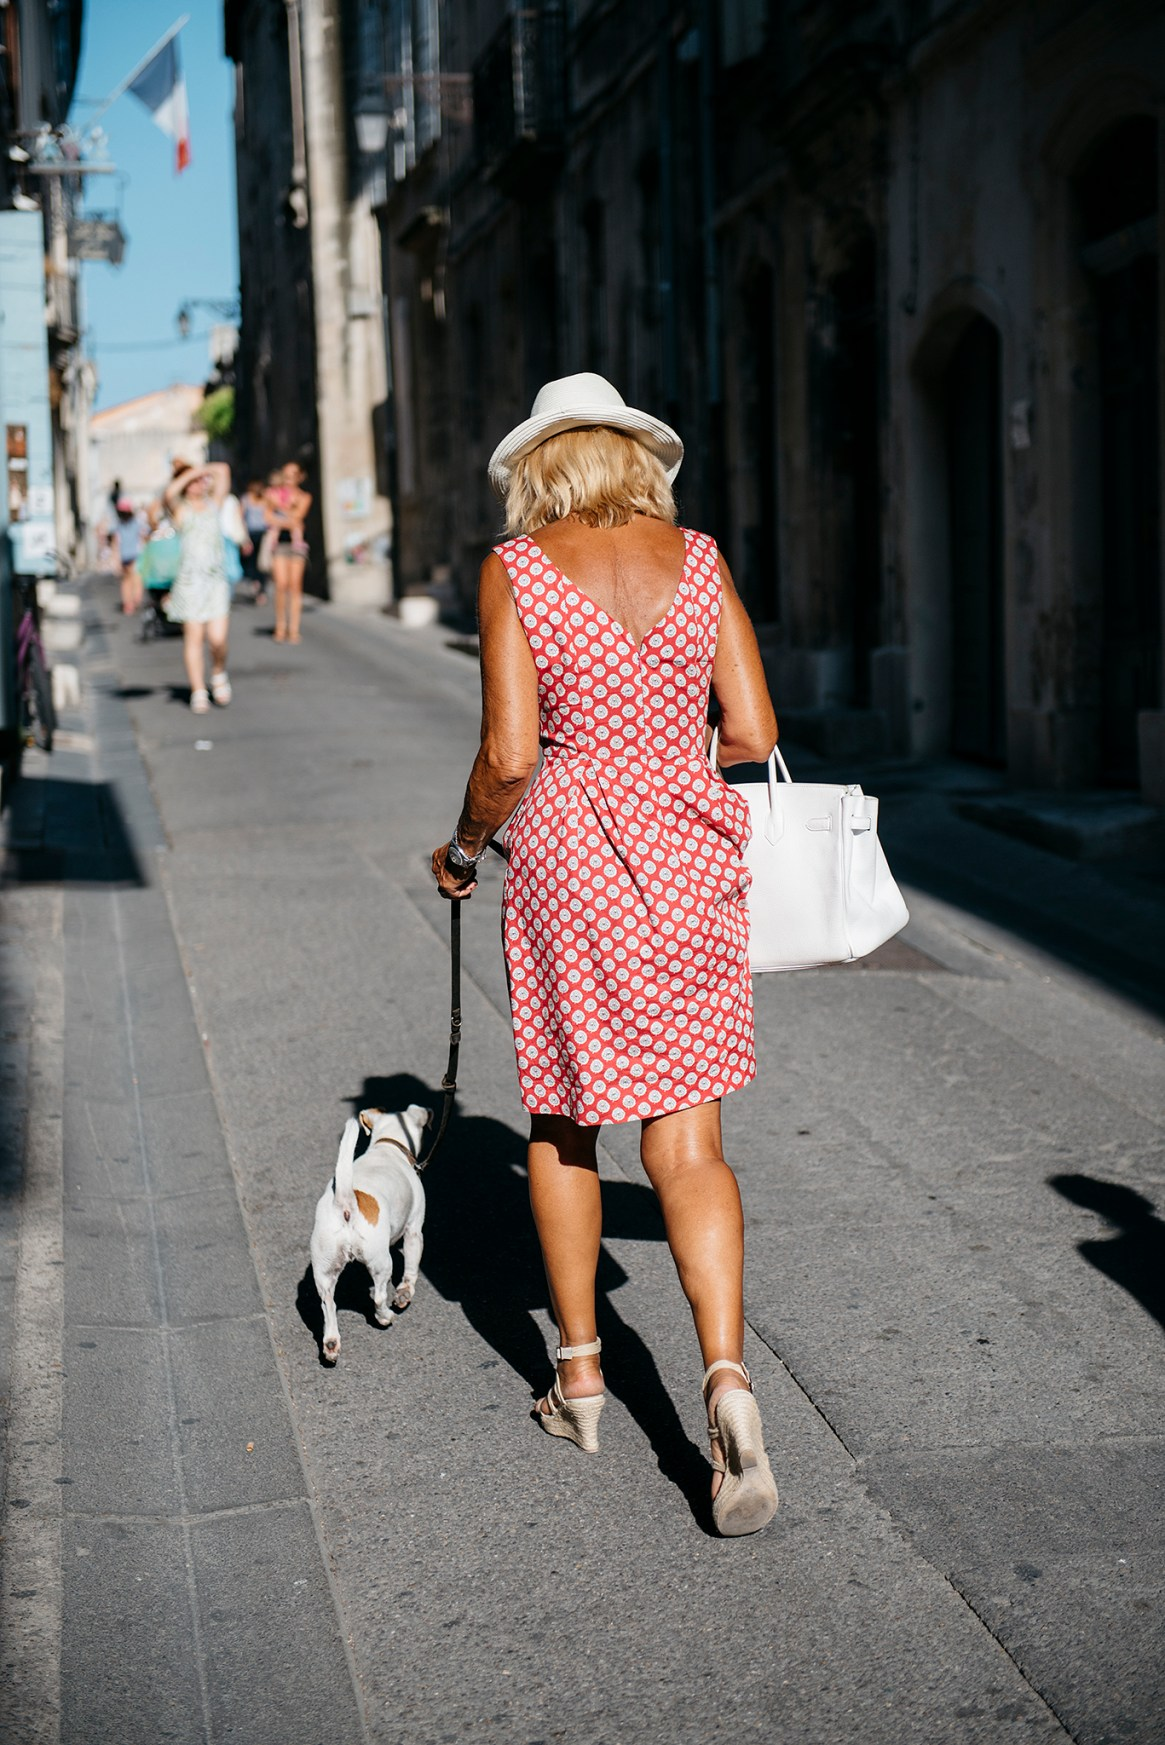 A woman wearing a striking, stylish red-and-white dress with white shoes, hat and handbag is seen from the back as she walks down the street with her little white dog at Les Rencontres d'Arles photography festival, Arles, France